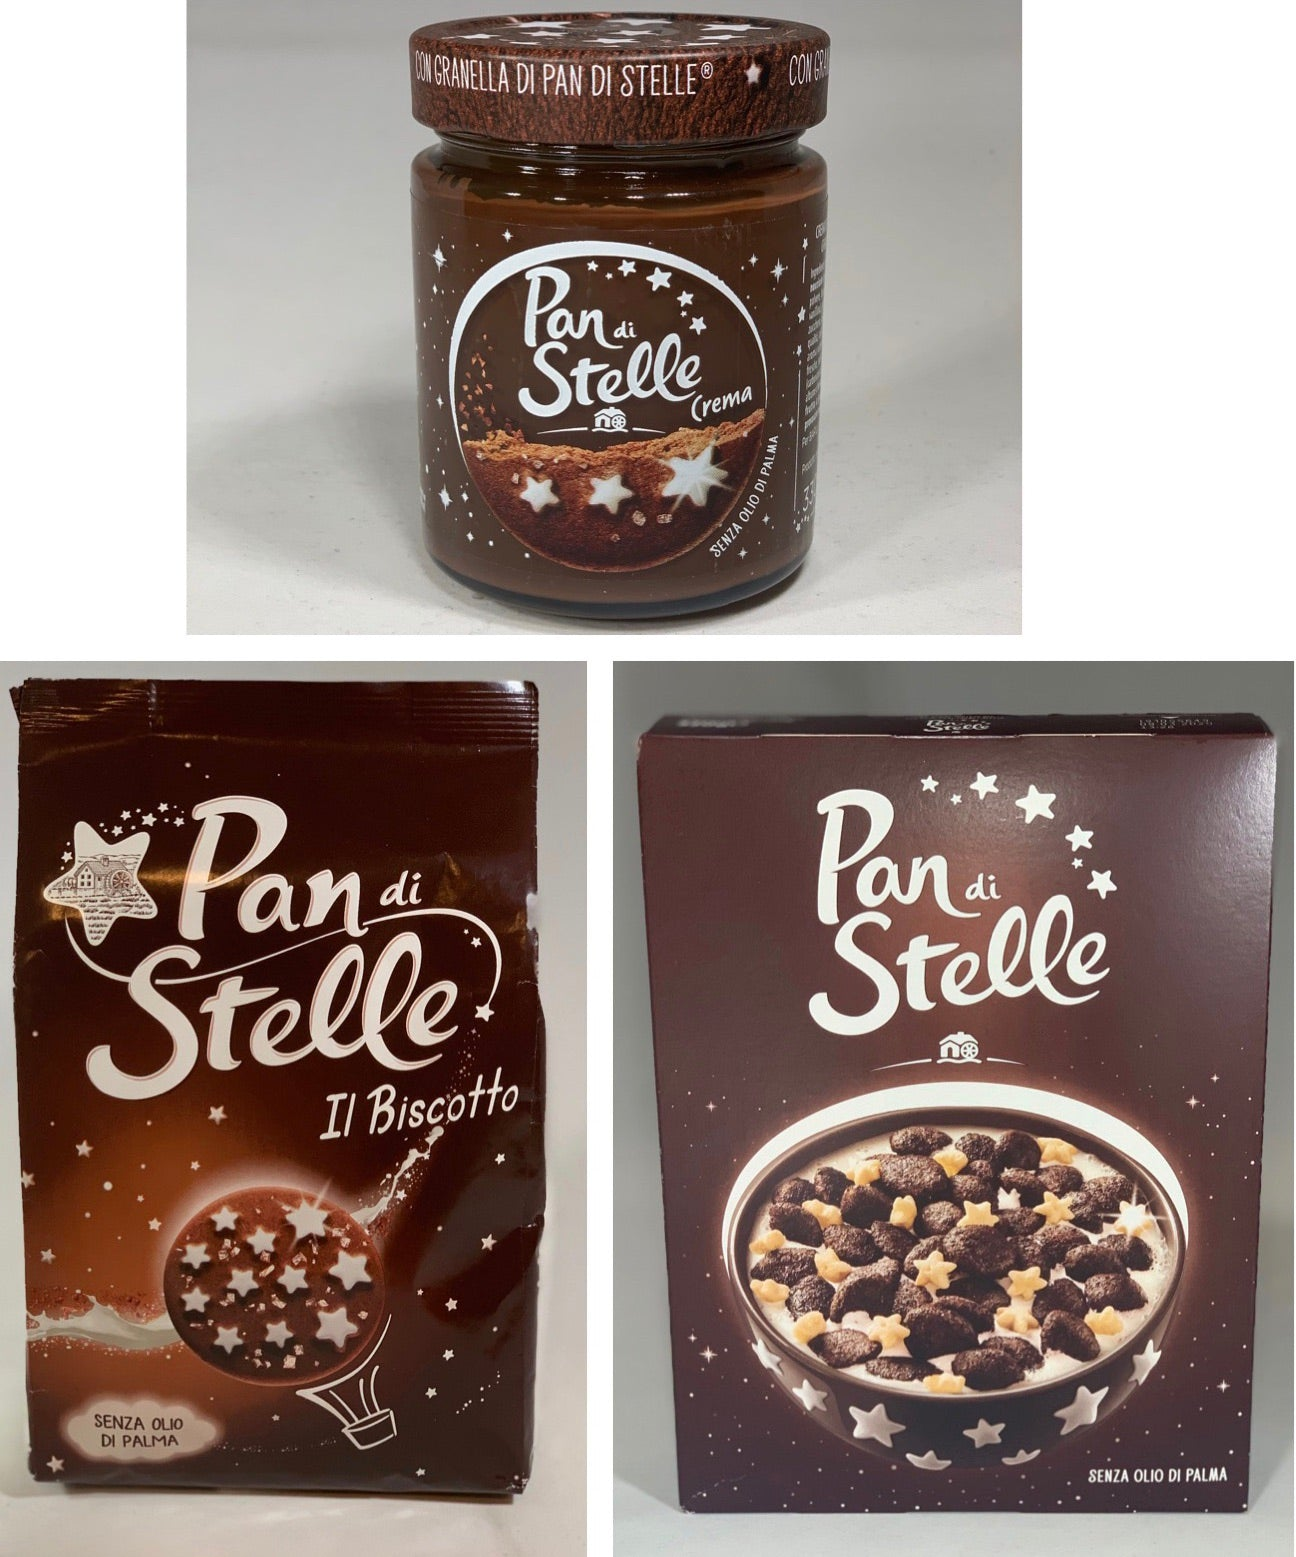 Bundle Pan Di Stelle: 1 Pan di Stelle cookies 350g; 1 Pan di Stelle Cream; 1 Pan di Stelle box of cereal